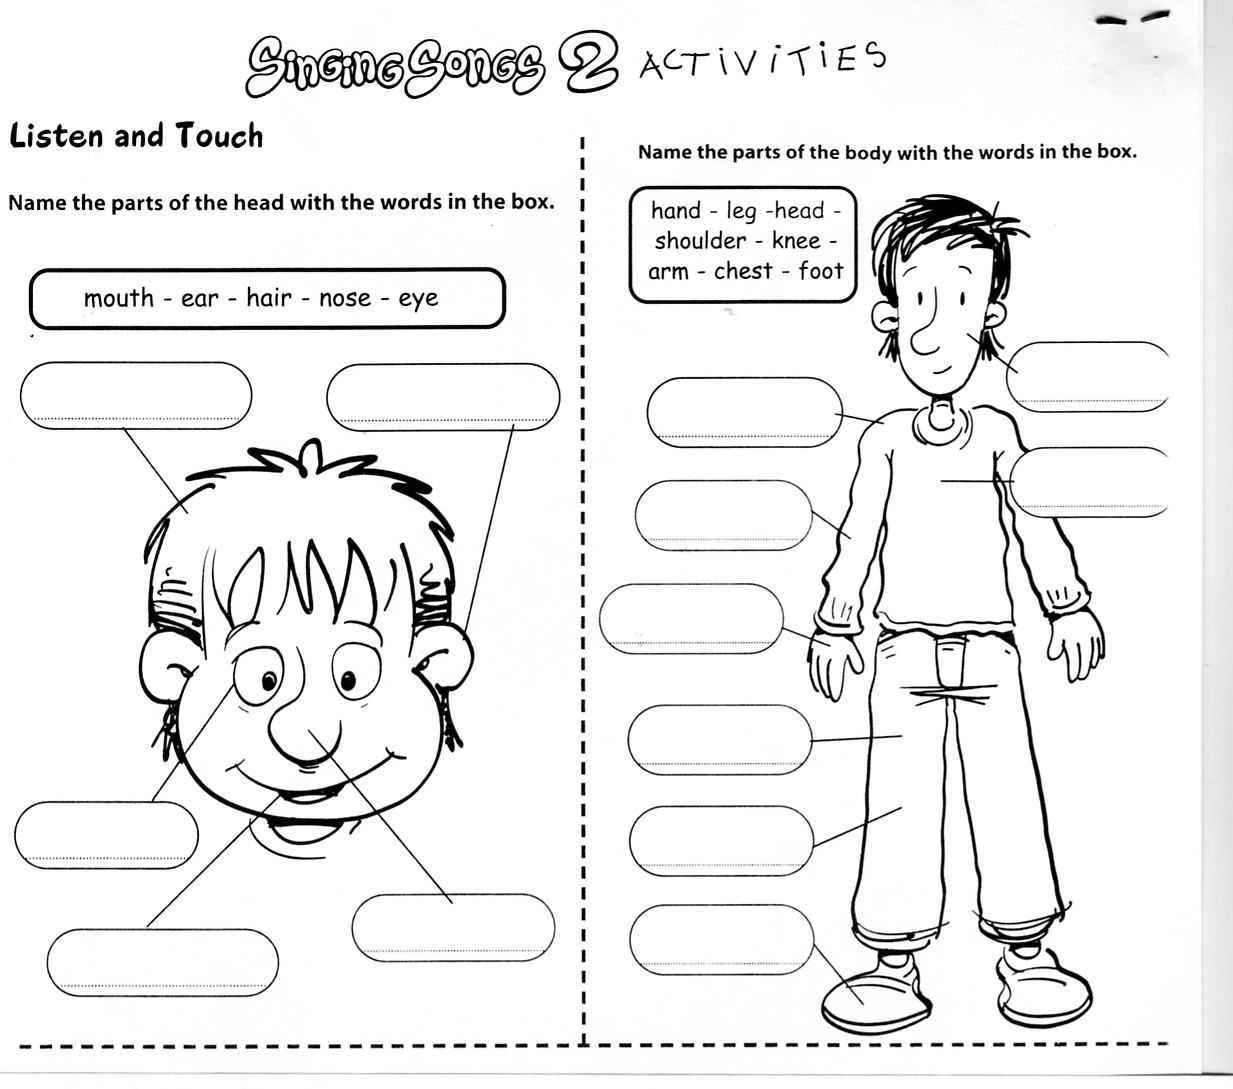 small resolution of learningenglish-esl: BODY WORKSHEETS   Alphabet worksheets preschool